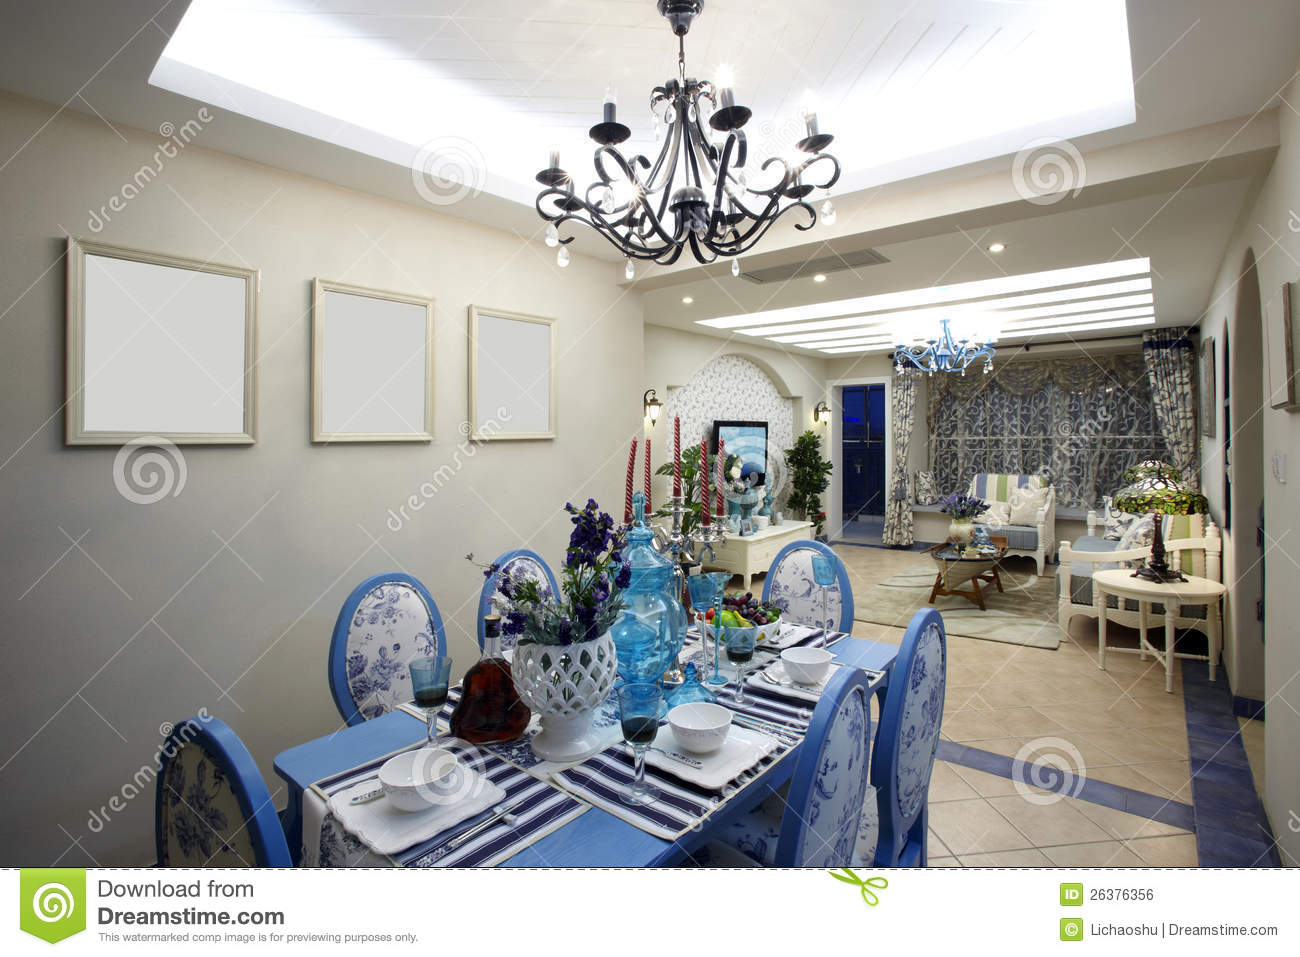 the mediterranean-style dining room royalty free stock image